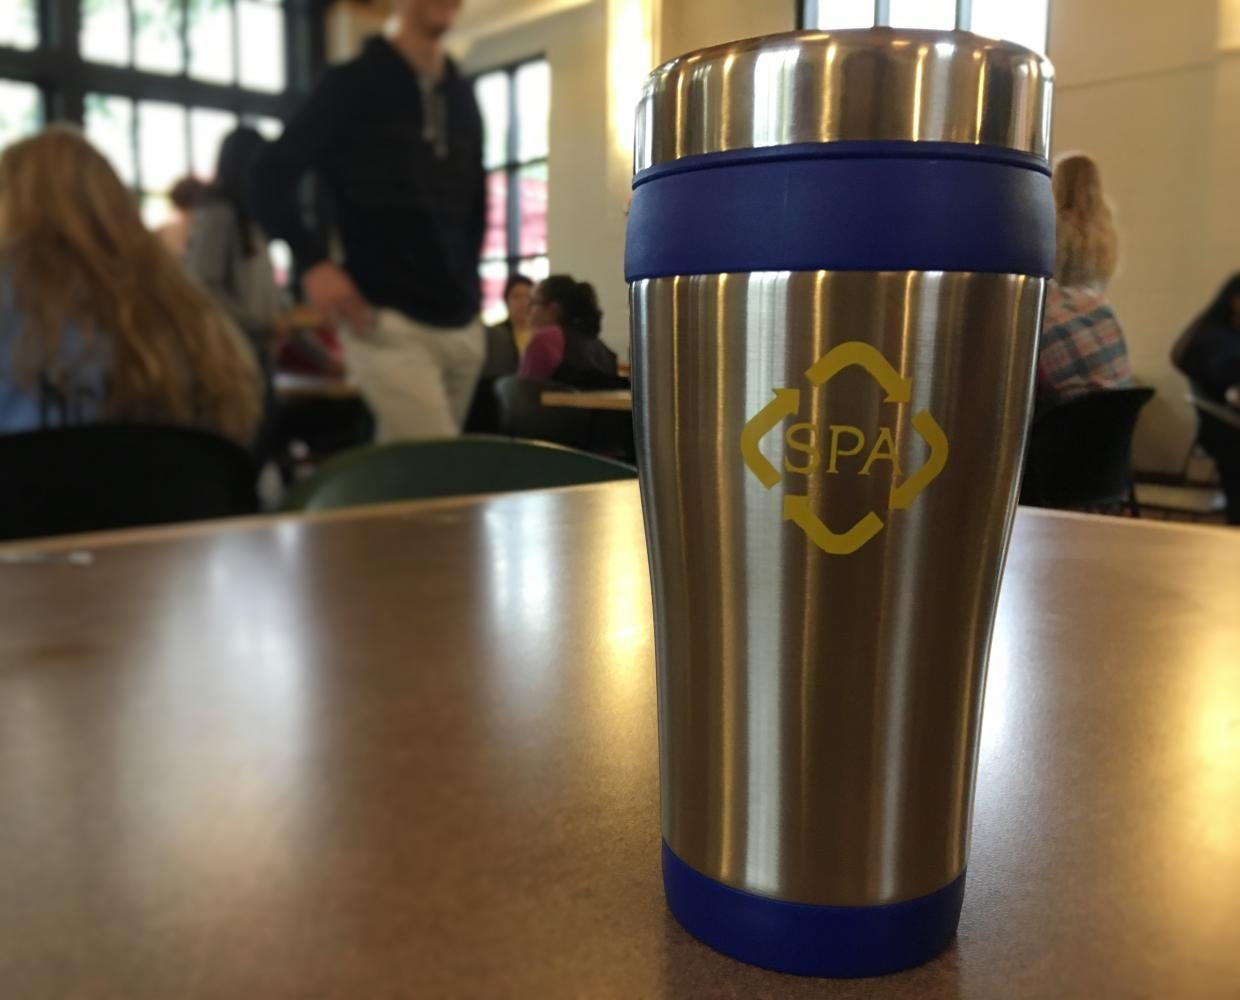 U.S.C. will sell reusable bottles and mugs to reduce waste at SPA.